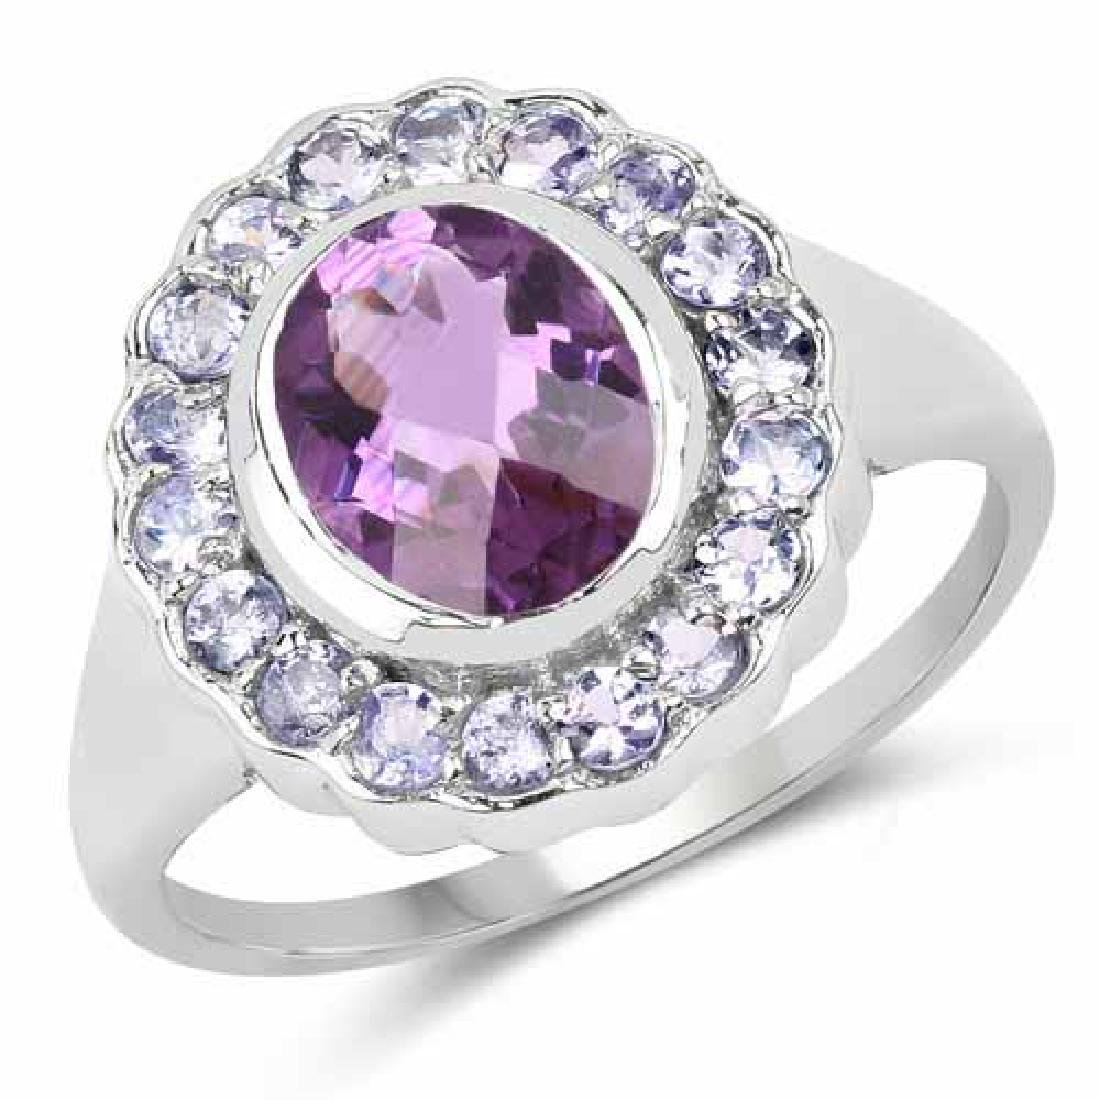 2.53 Carat Genuine Amethyst and Tanzanite .925 Sterling